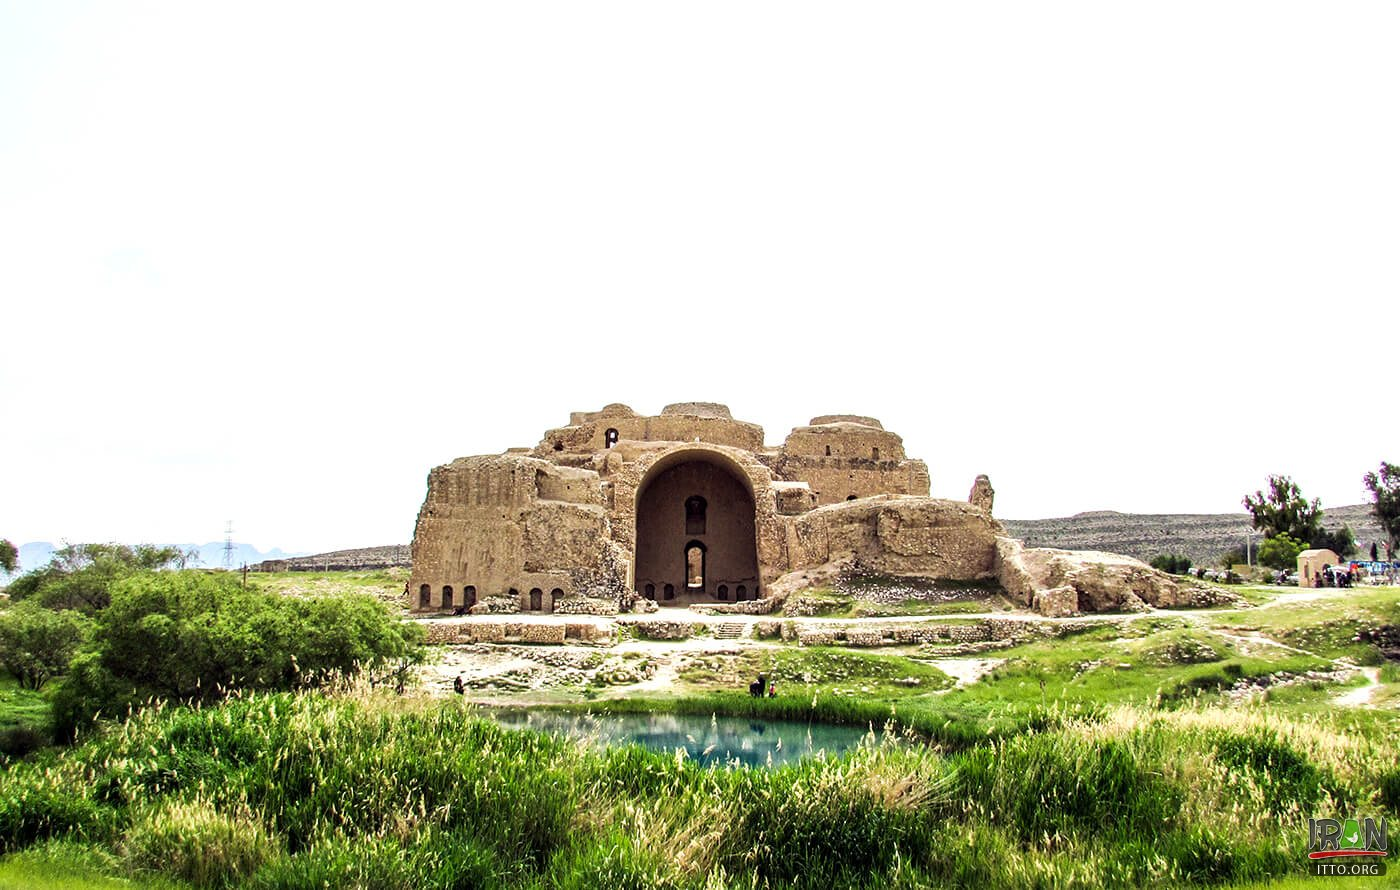 Palace of Ardeshir Babakan, the First Iranian Domed Structure